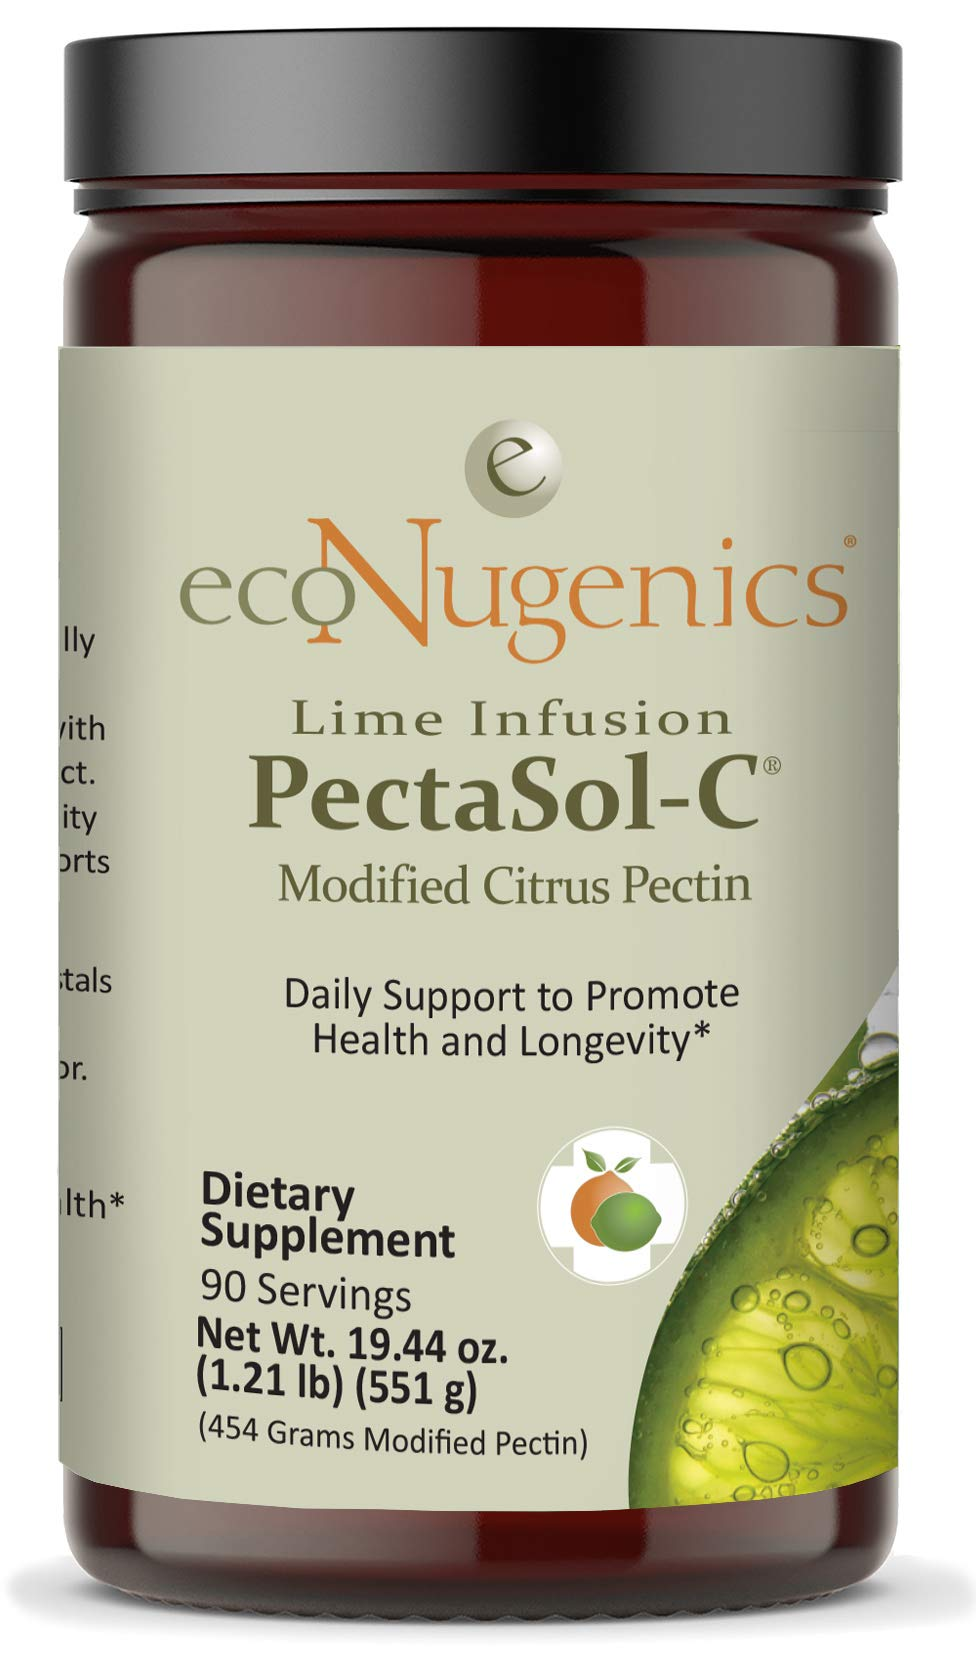 ecoNugenics - Lime Infusion -C Modified Citrus Pectin - 551.29 Grams - Professionally Formulated to Help Maintain Healthy Galectin-3 Levels - Supports Cellular & Immune System Health